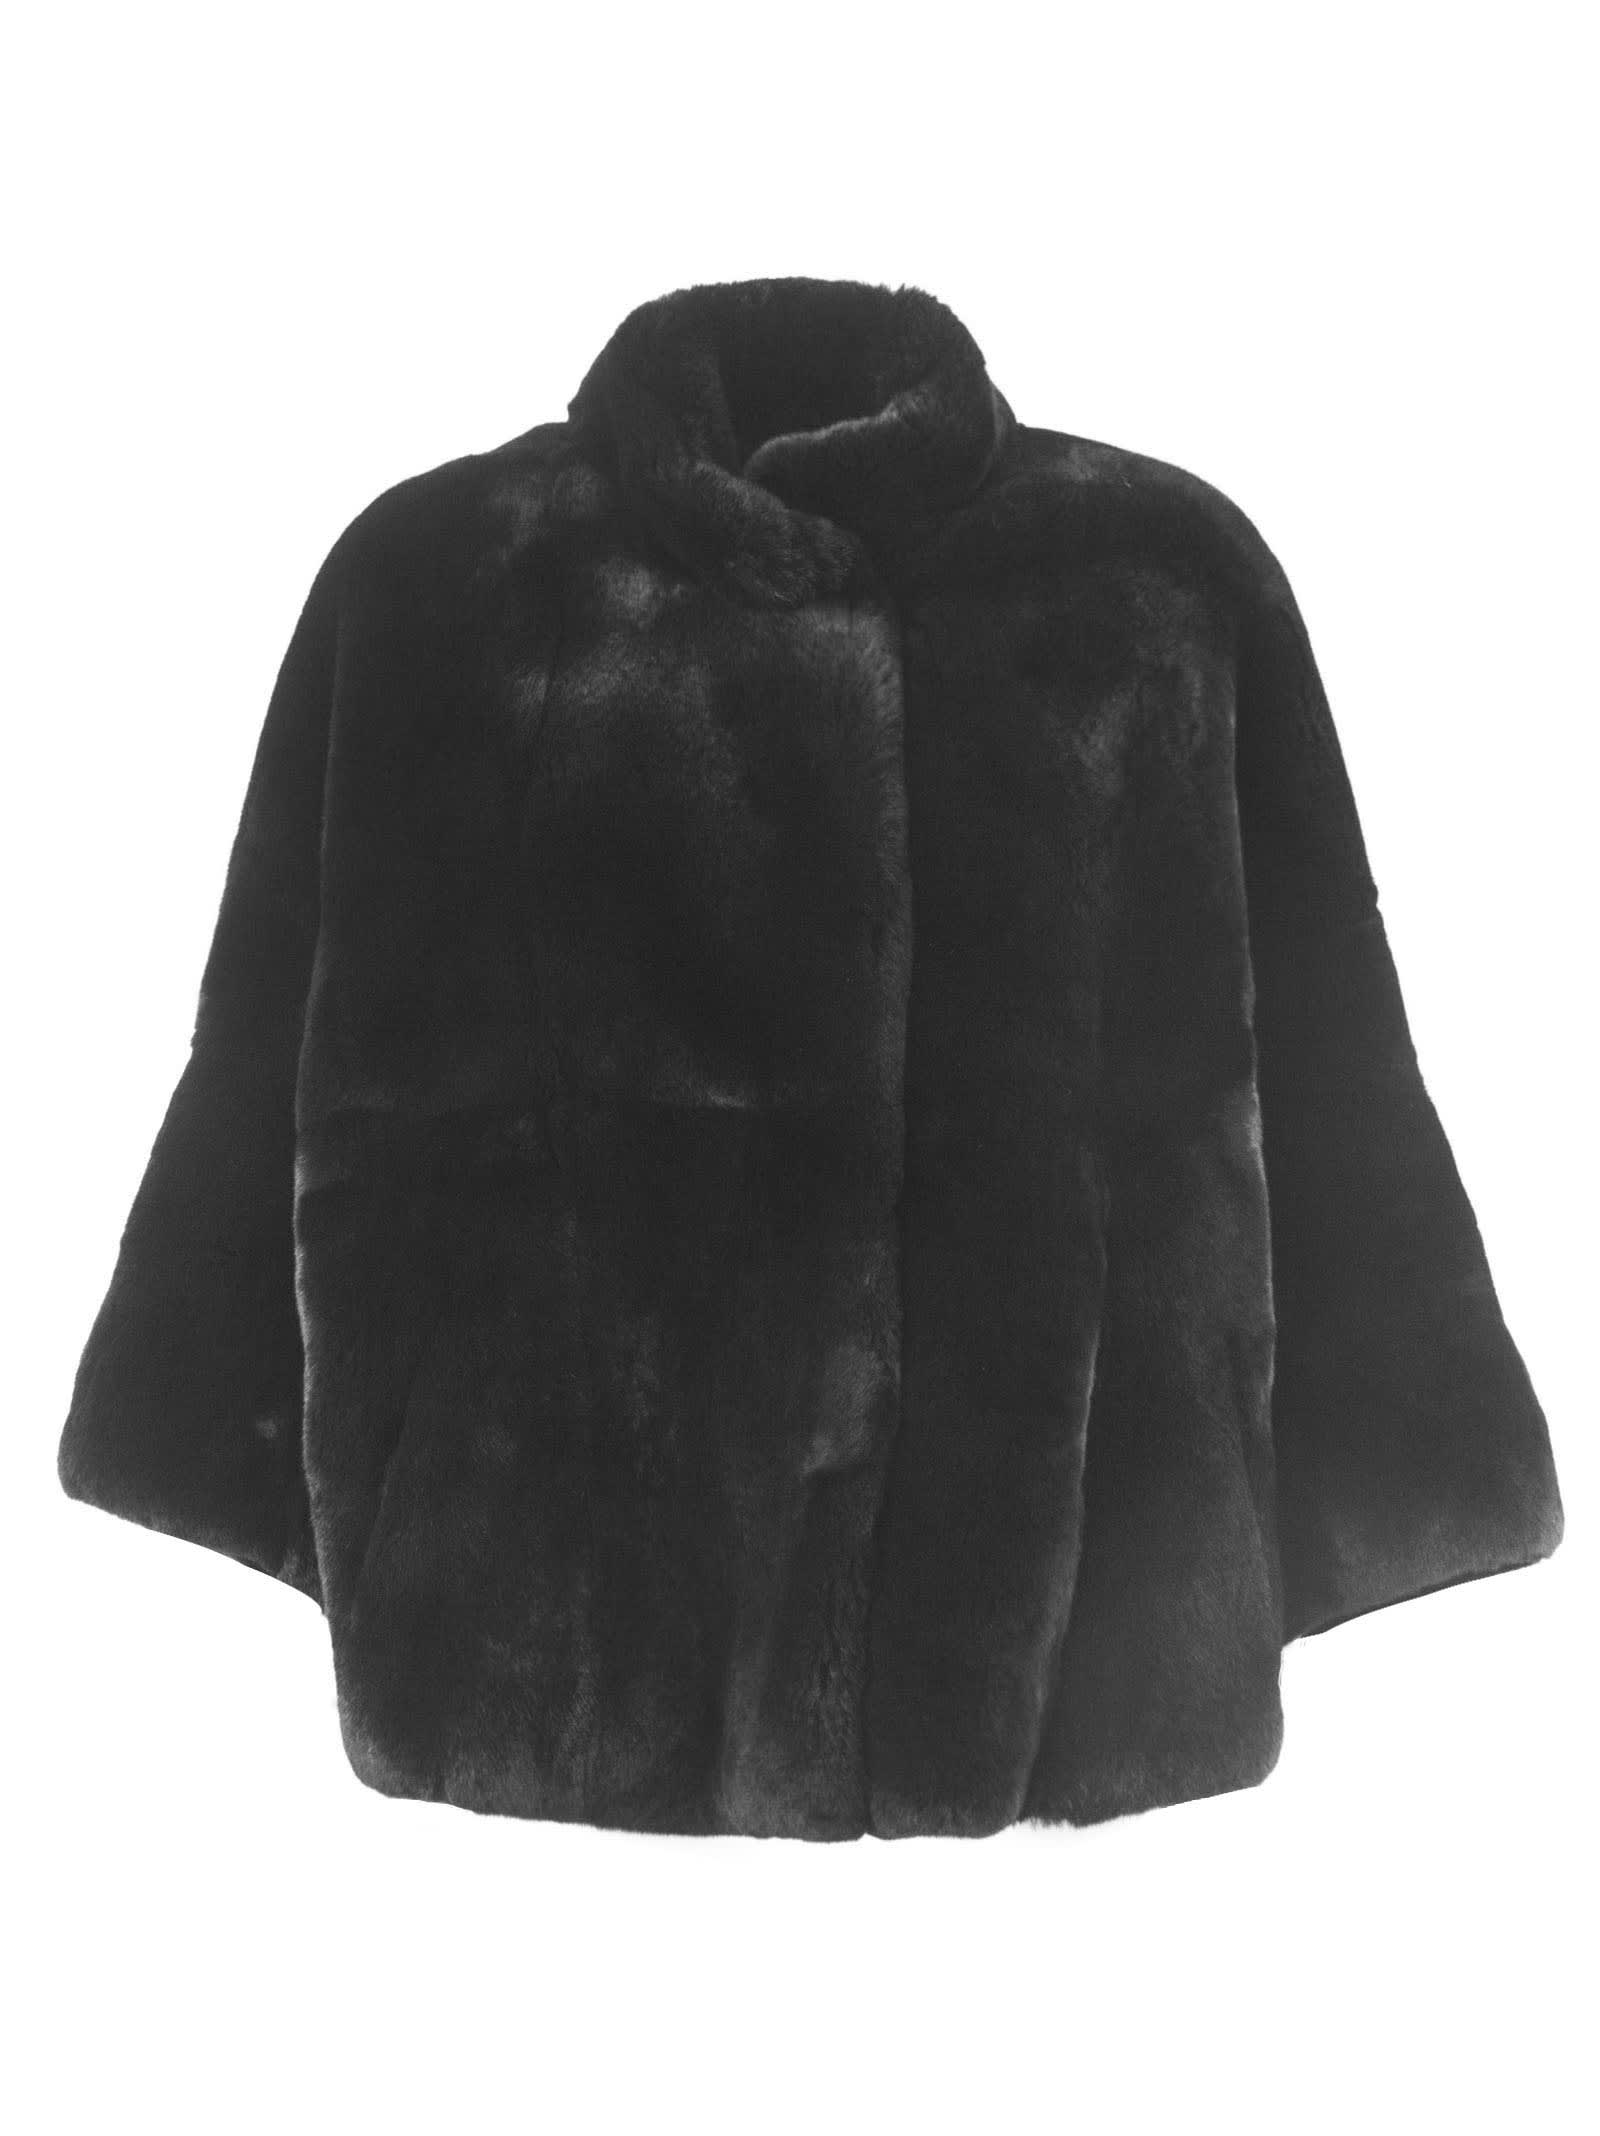 S.W.O.R.D 6.6.44 Charcoal Rabbit Fur Shearling Button-up Coat